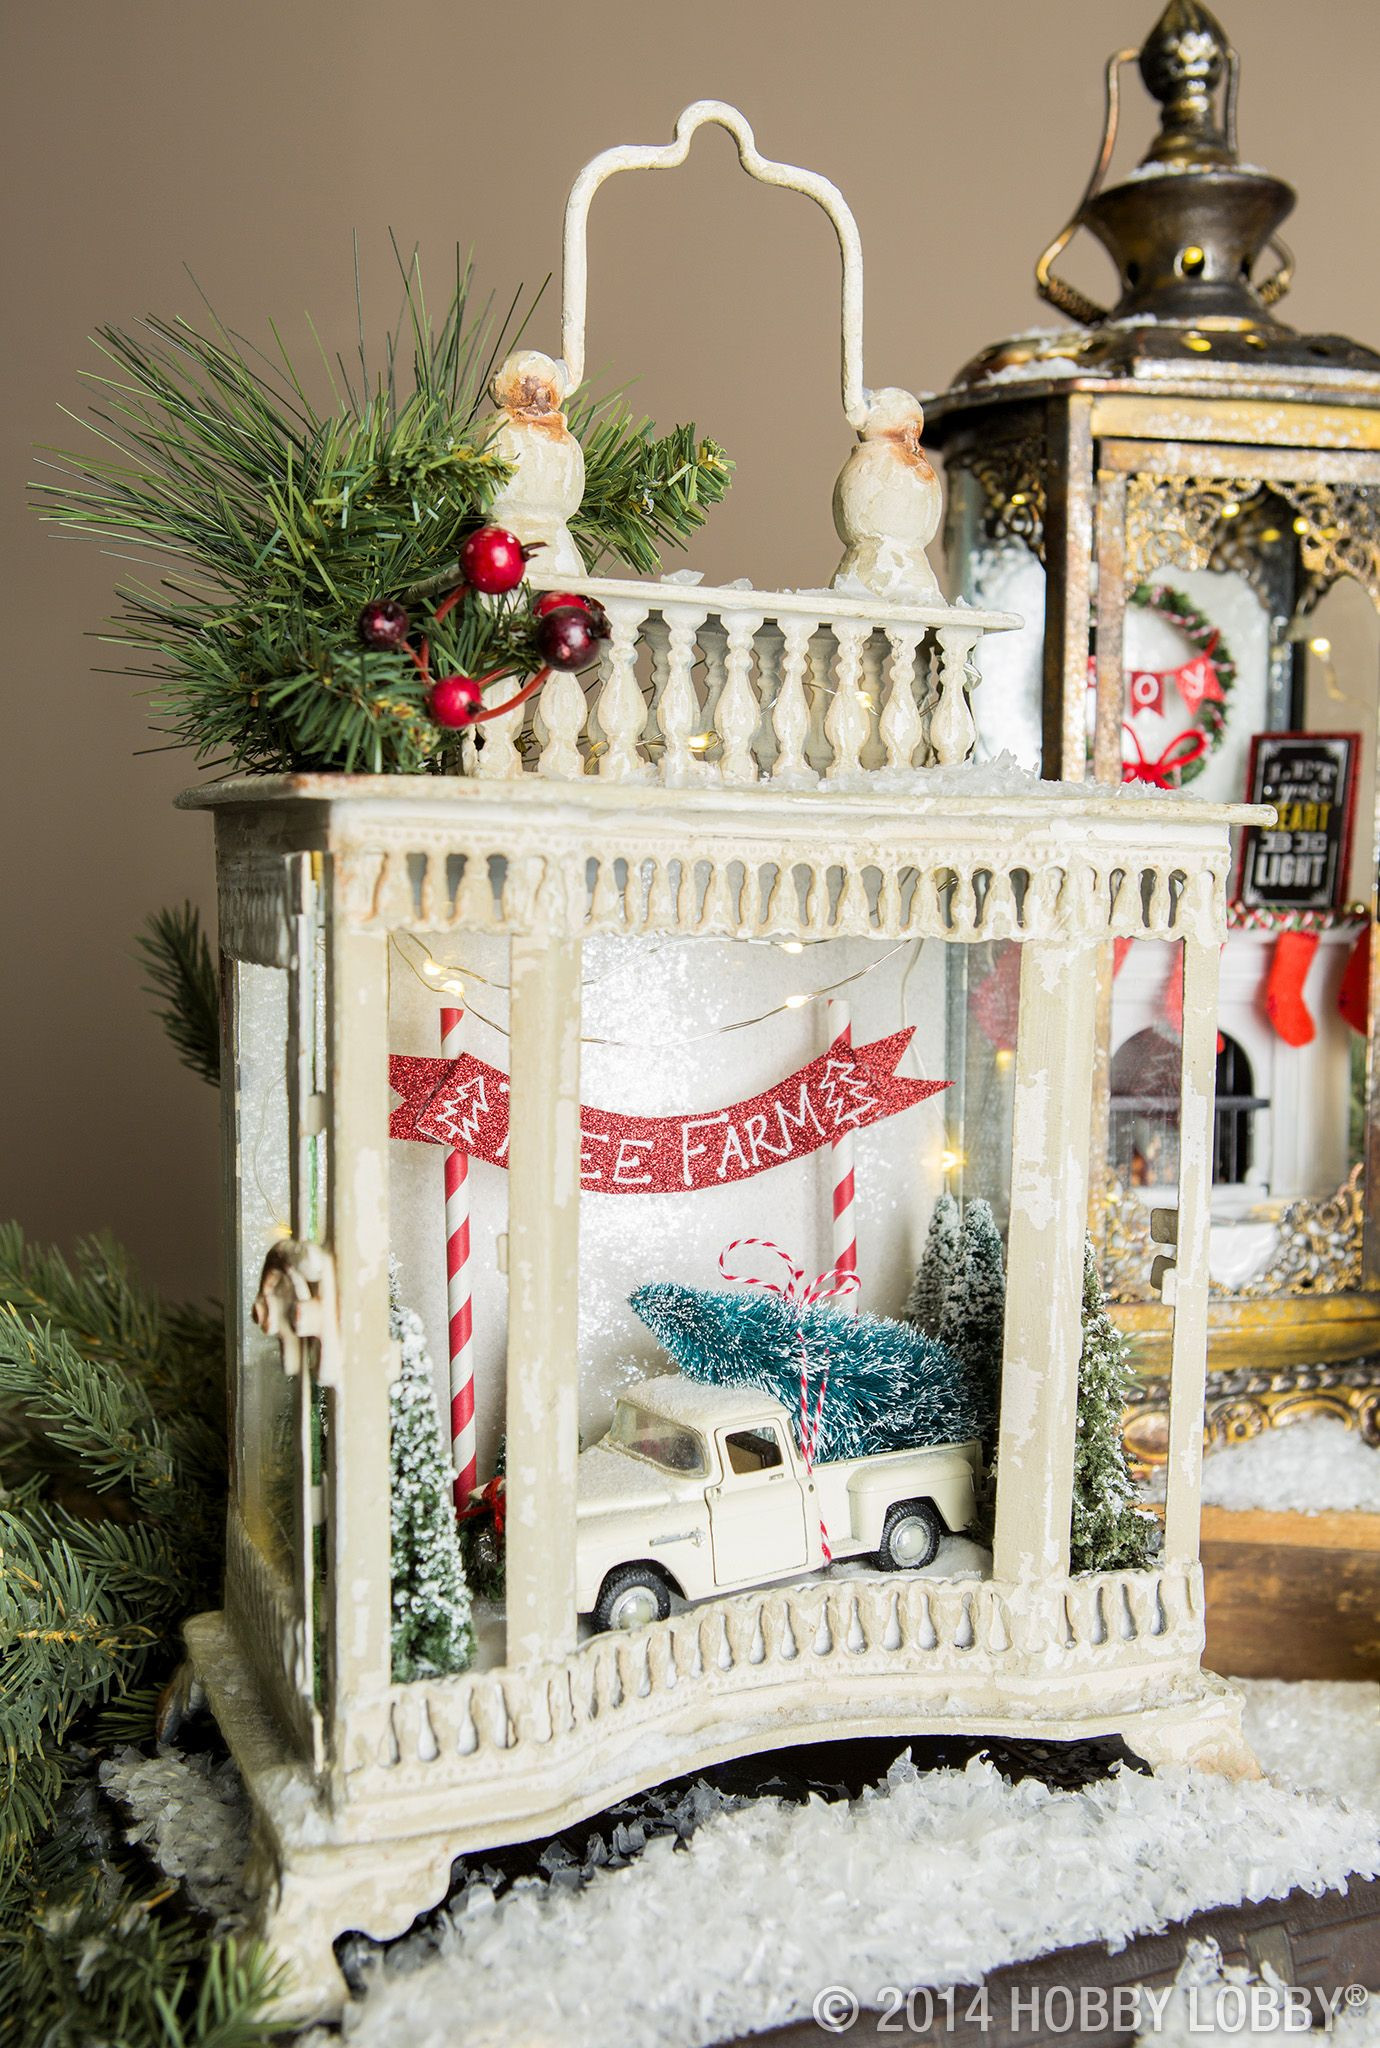 DIY Christmas Lantern  Add a personal touch to your Christmas decor with homemade